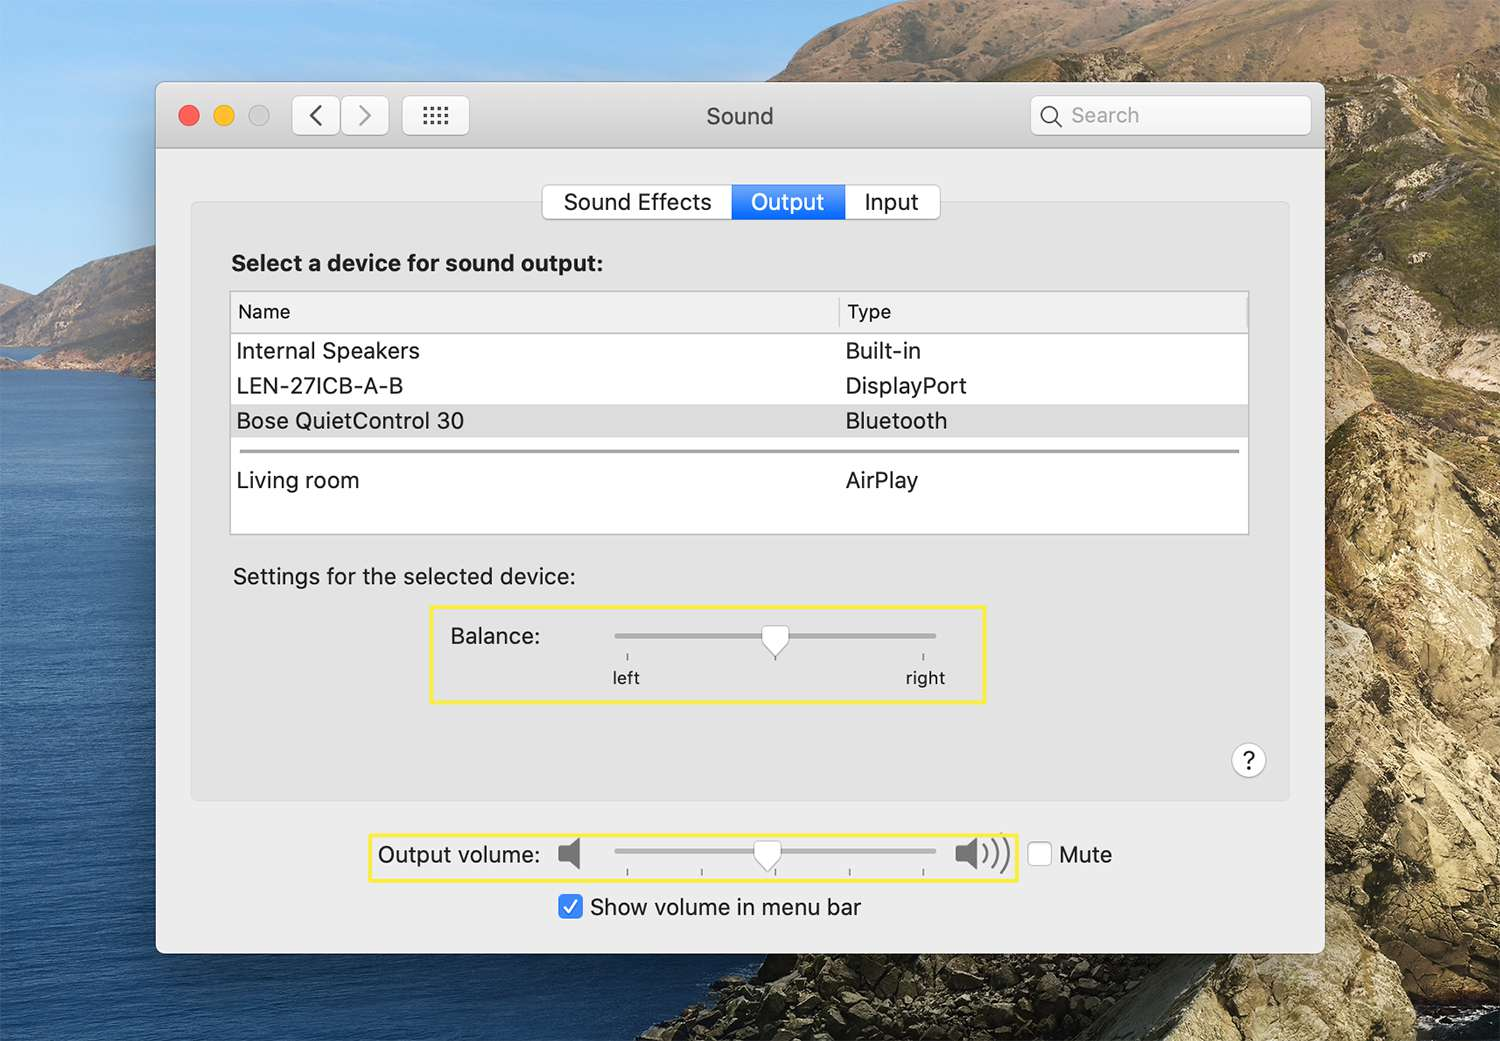 Output options for connected devices from macOS Sound settings